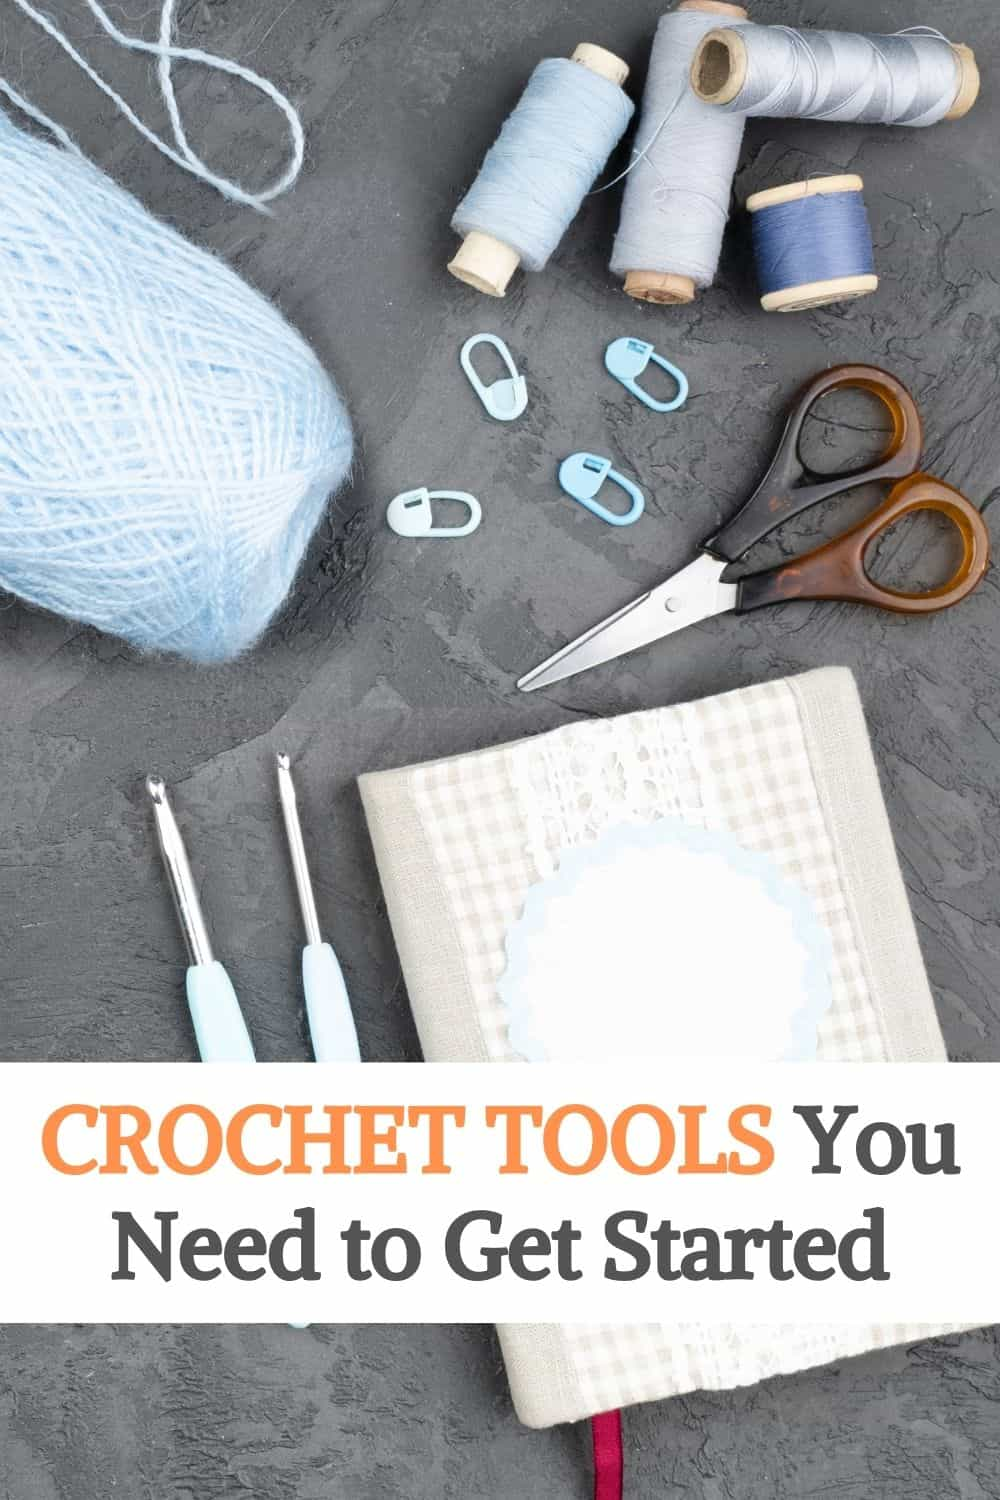 Crochet Tools You Need to Get Started